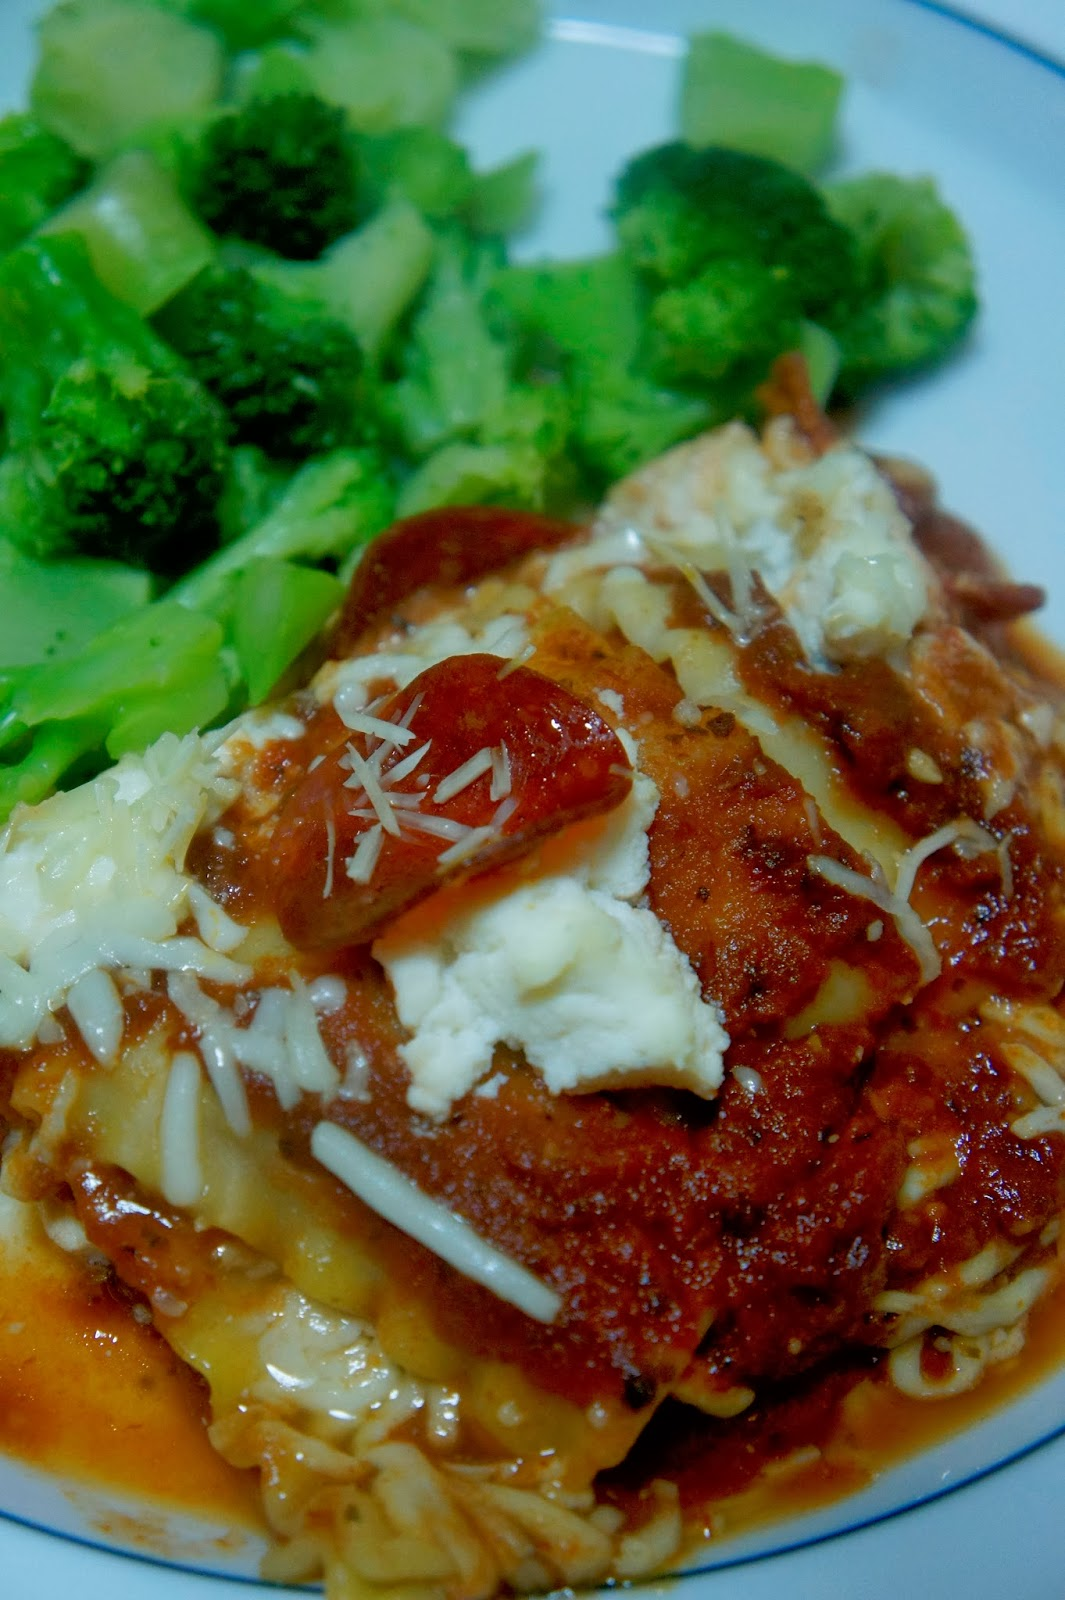 Savory Sweet and Satisfying: Pepperoni Lasagna